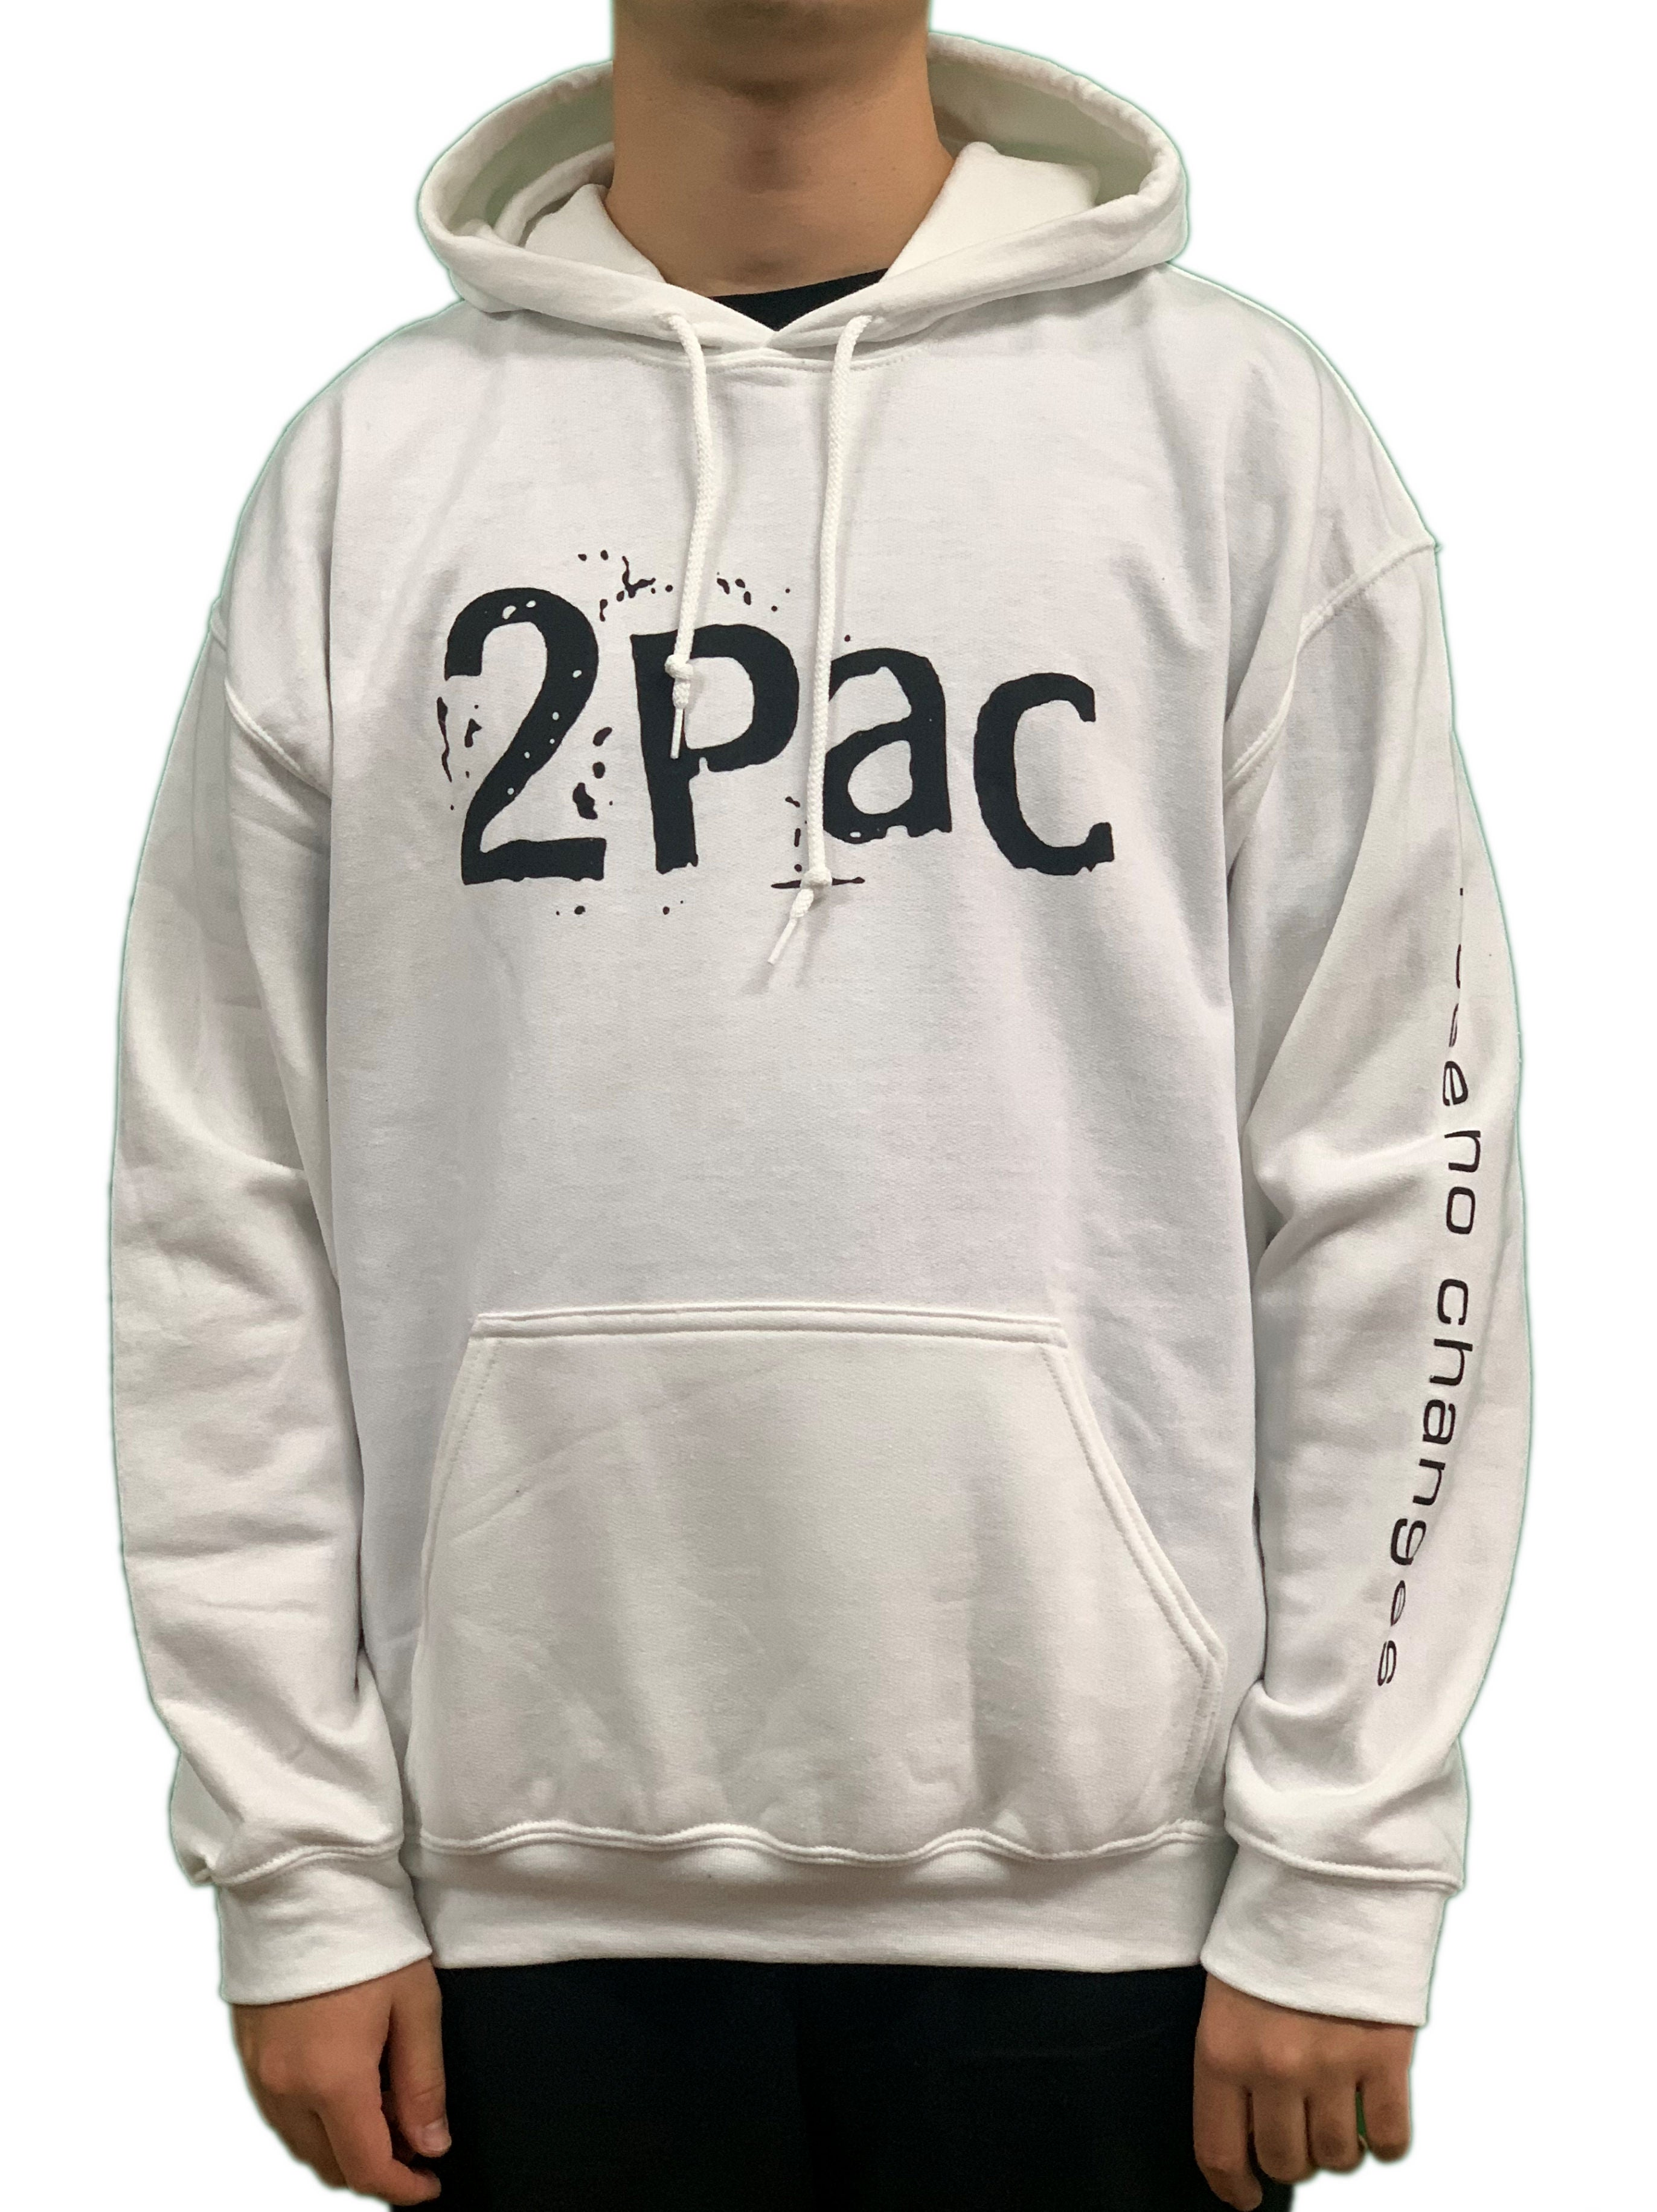 Tupac I See No Changes Pullover Hoodie Unisex Official Brand New Various Sizes